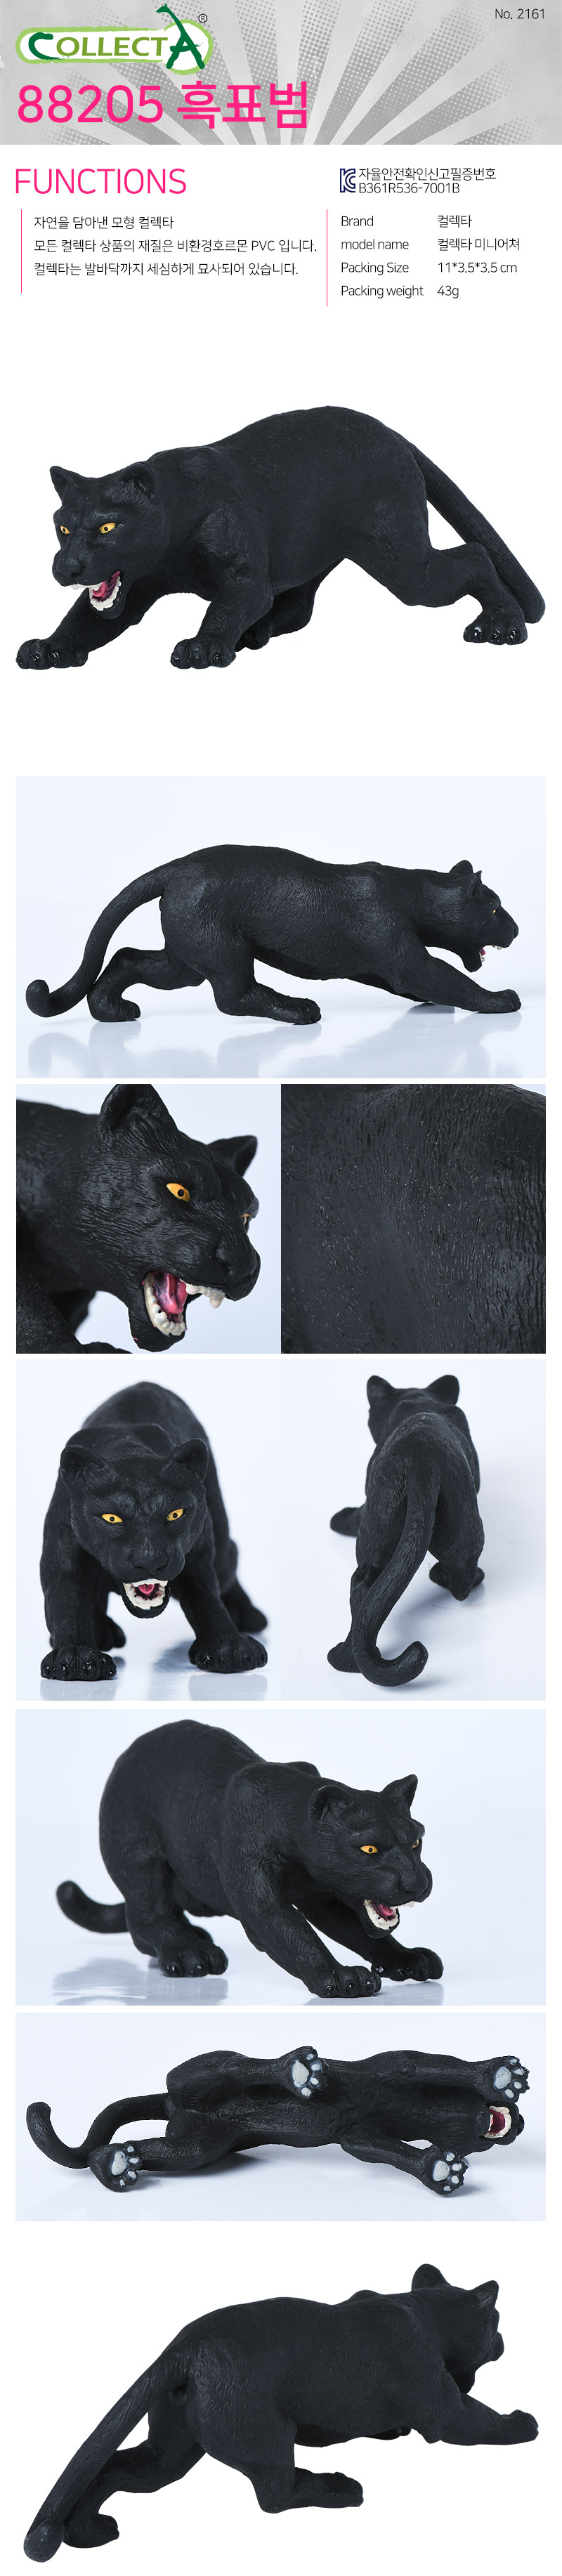 Black Panther 11 Cm Wild Animals Collecta 88205 Action Figures